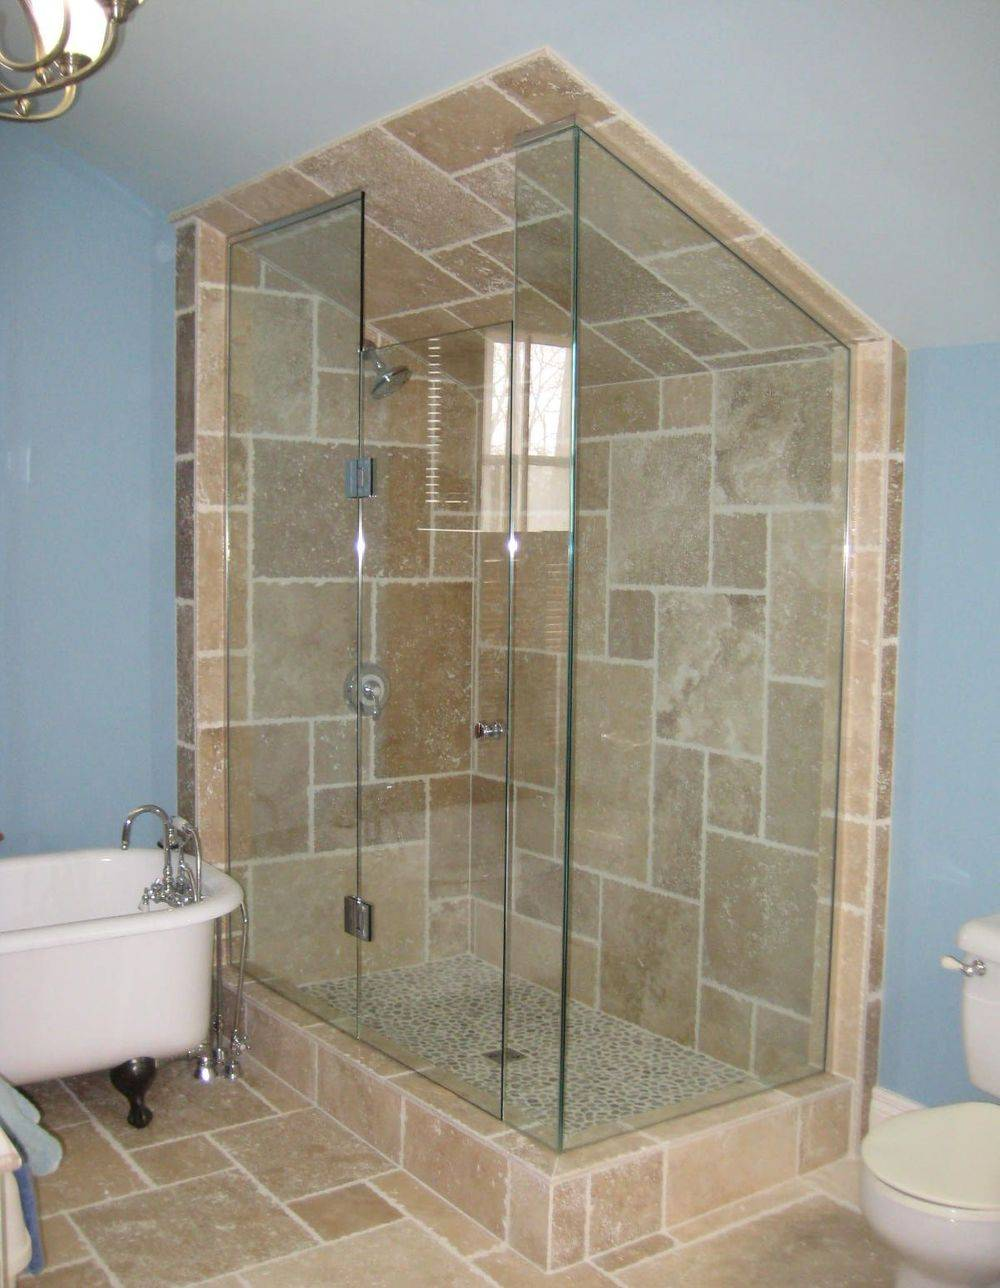 Frameless Glass Shower Enclosure , Markhan Richmond Hill, Toronto, Newmarket, Pickering, Uxbridge